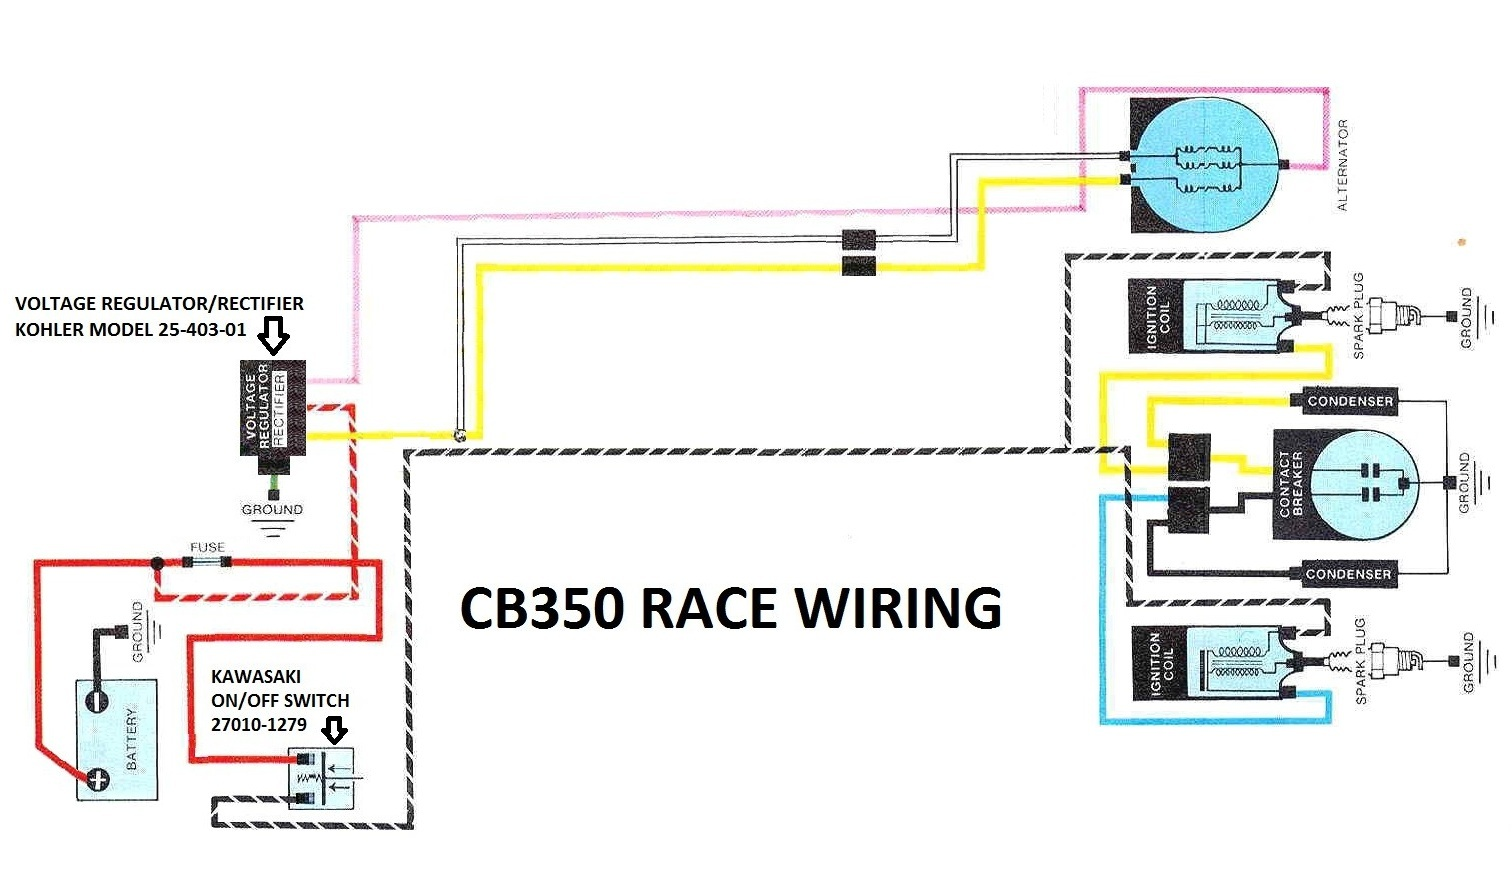 hight resolution of wrg 6760 e honda cb 350 wiring diagram e honda cb 350 wiring diagram